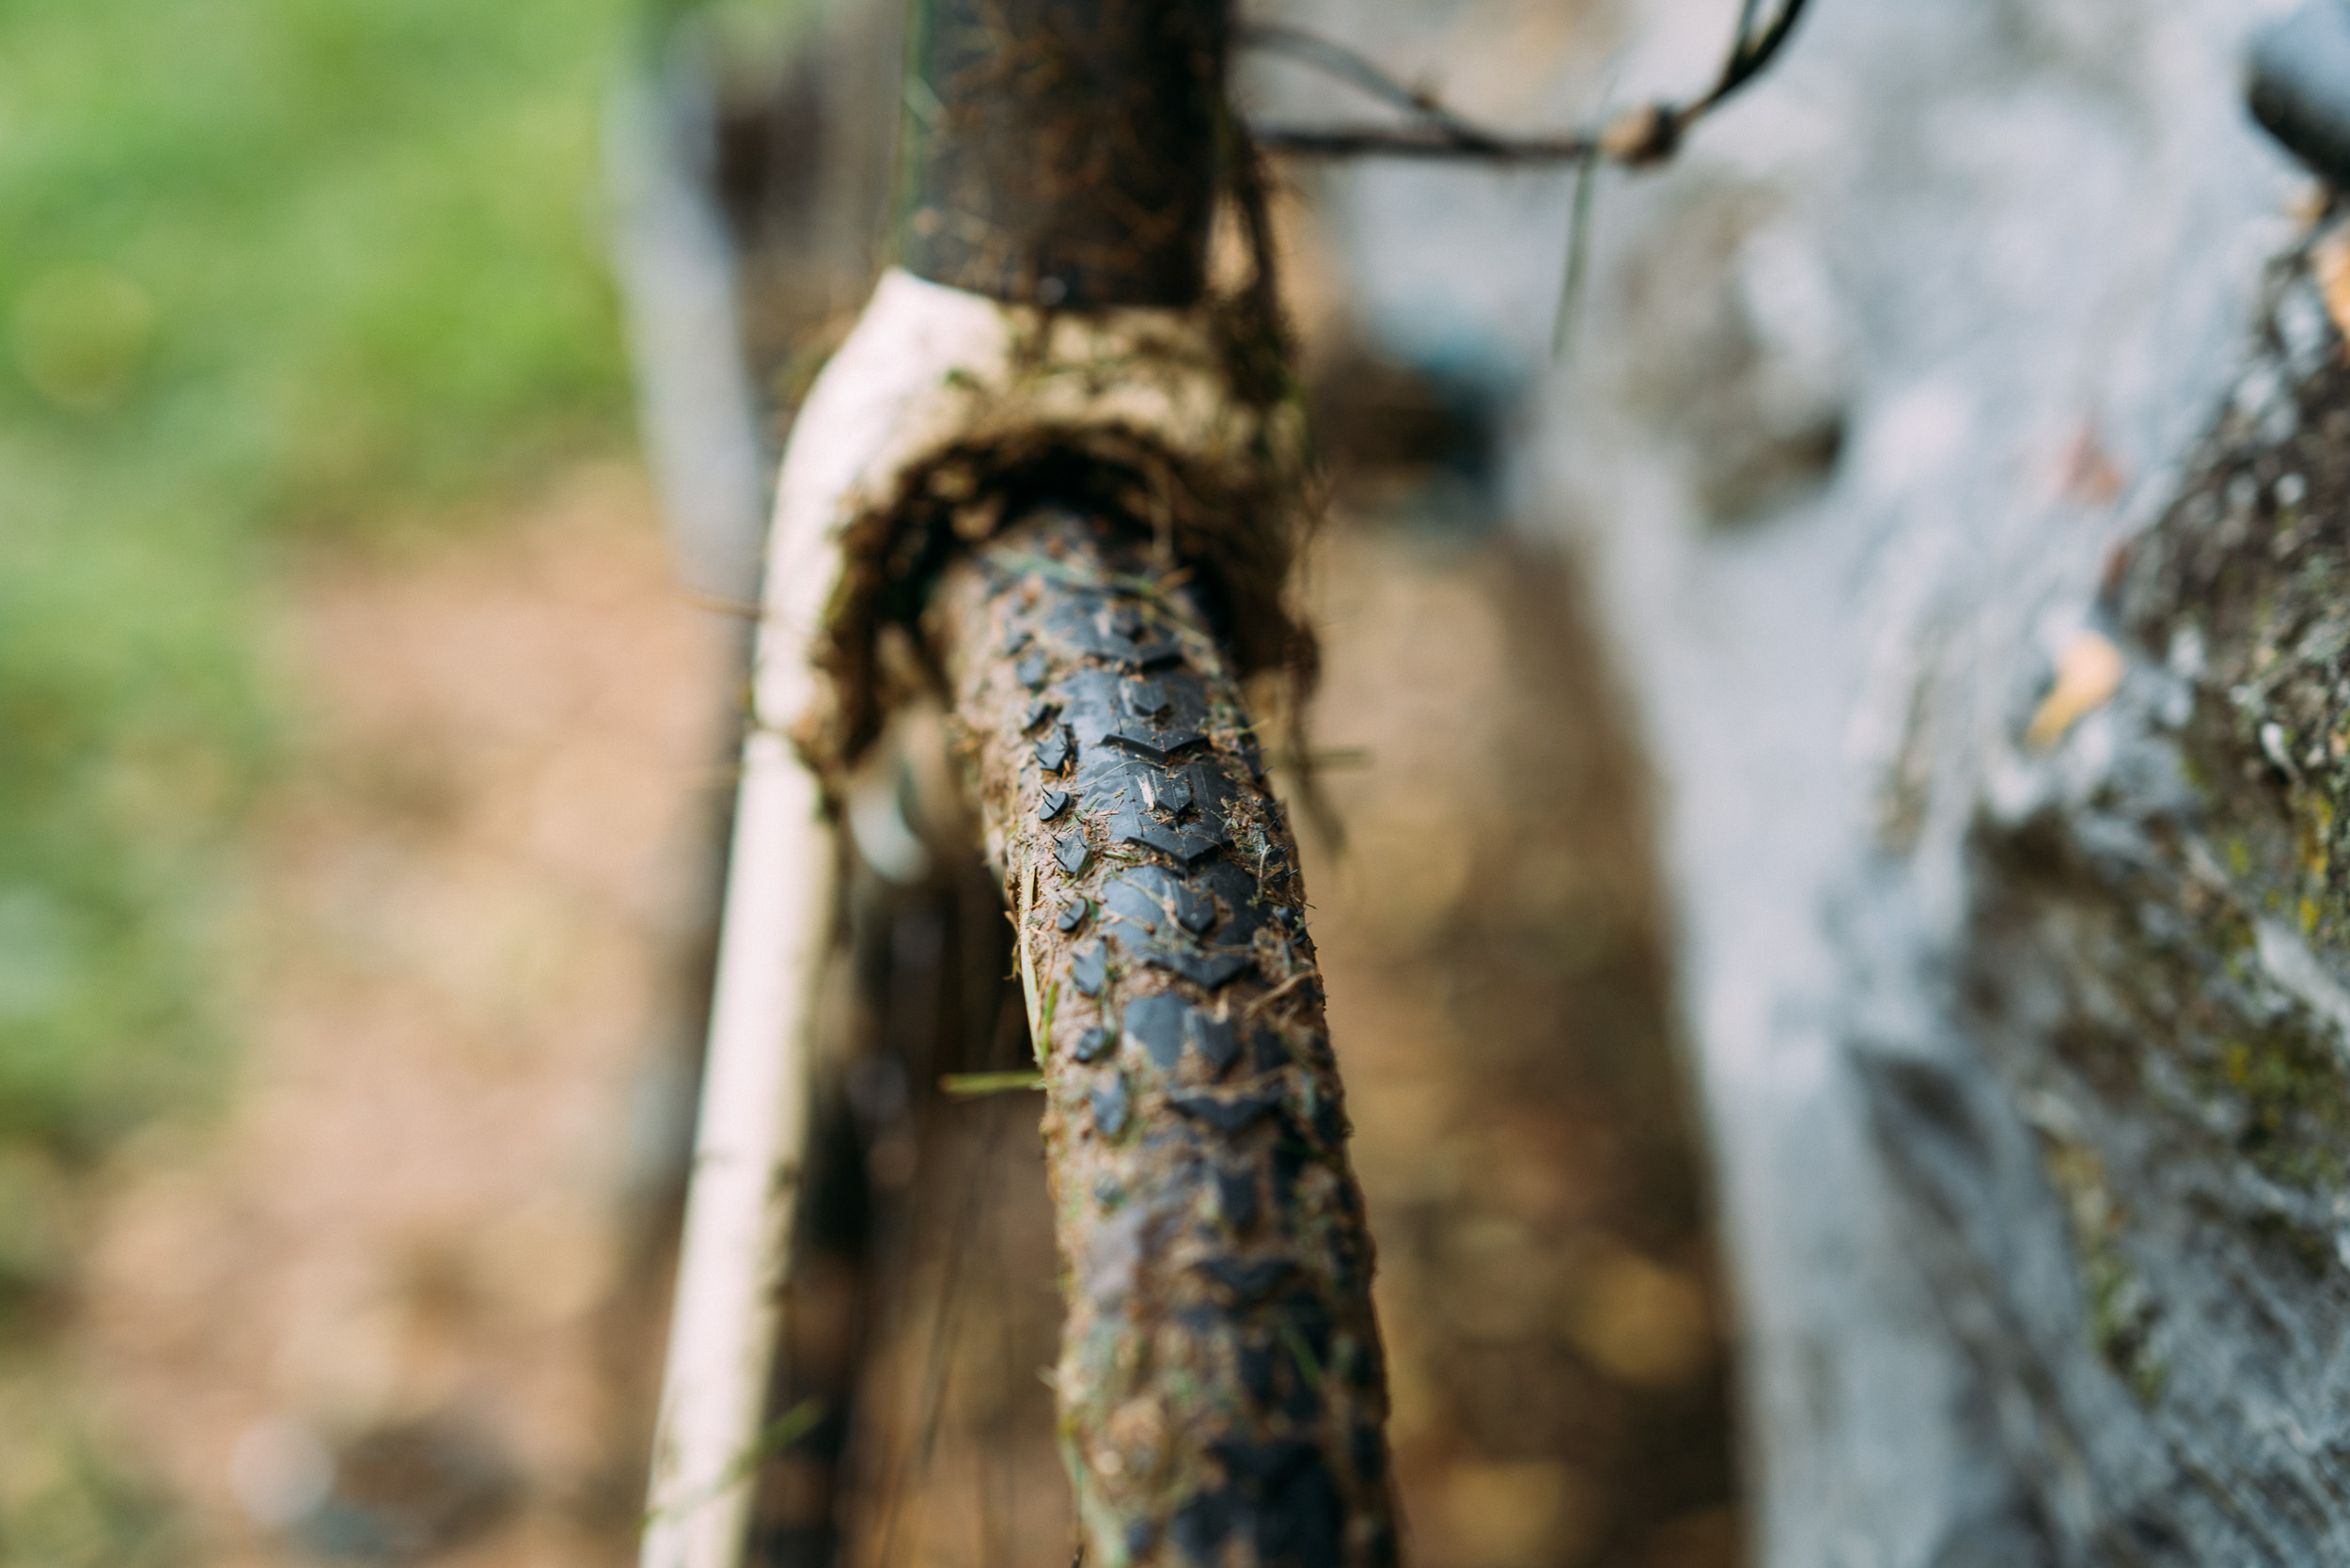 photo-rhetoric-to-be-determined-nittany-cyclocross-1001.jpg